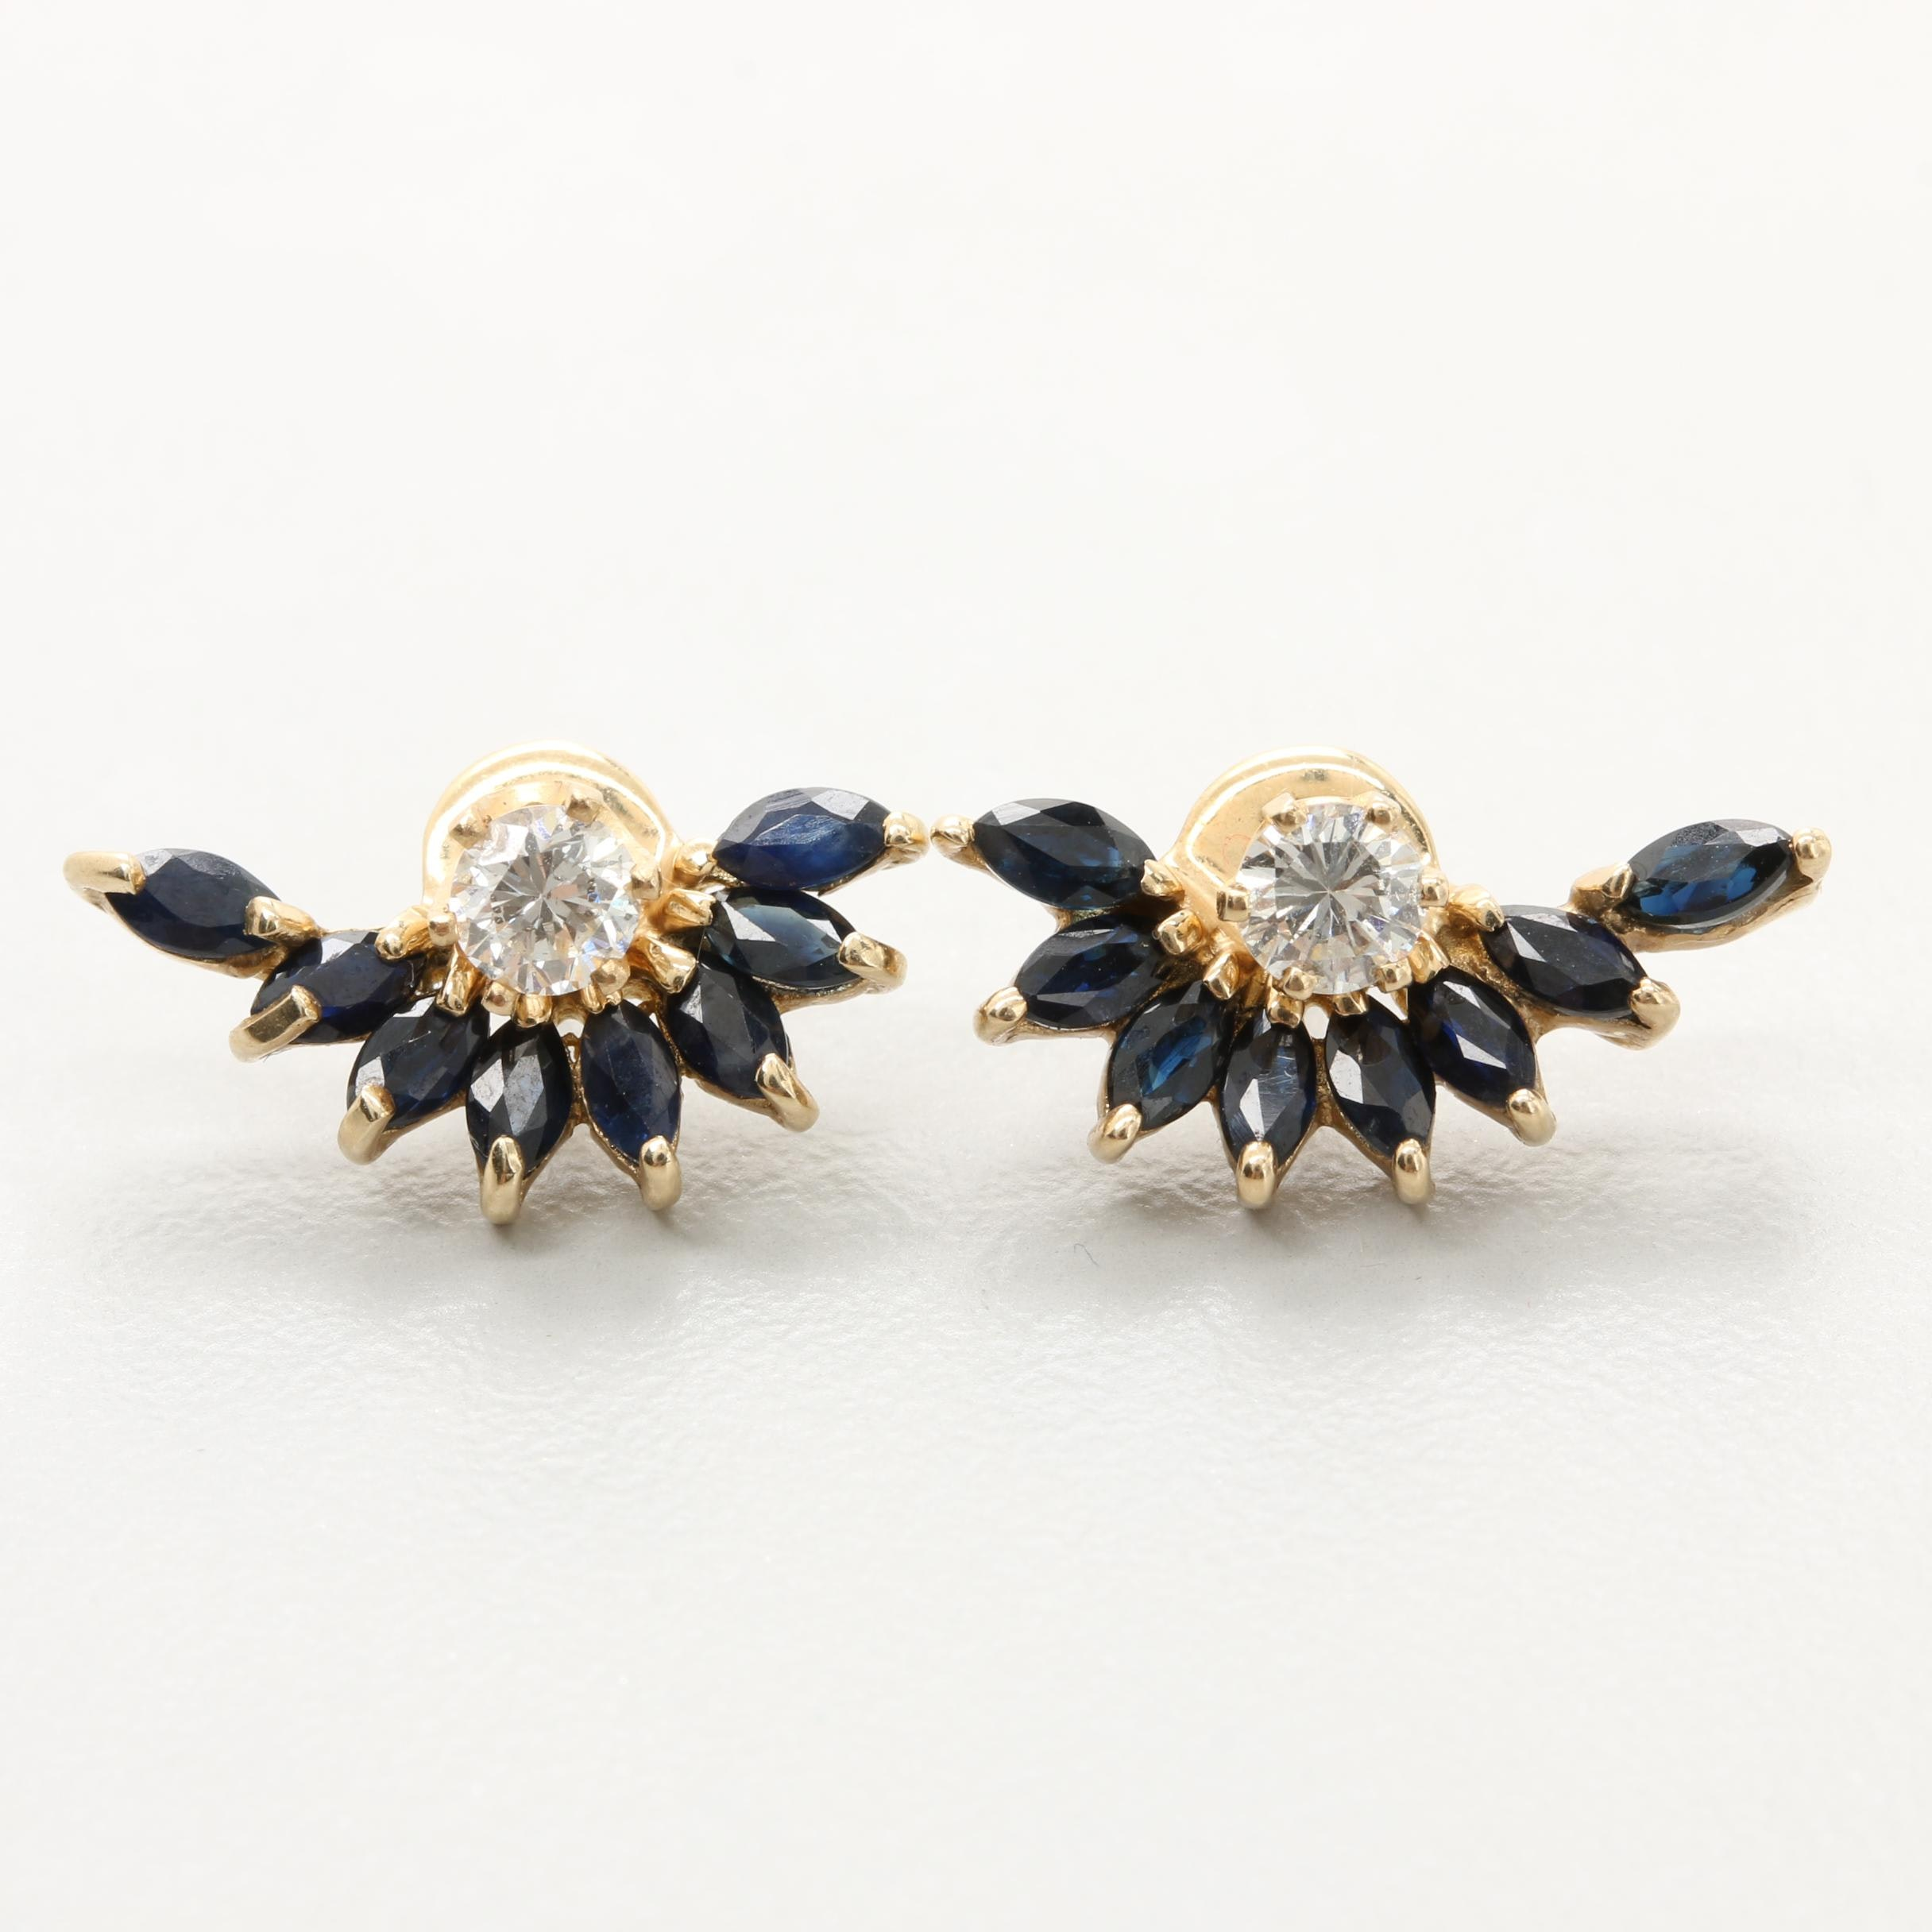 10K and 14K Yellow Gold Diamond and Blue Sapphire Earrings